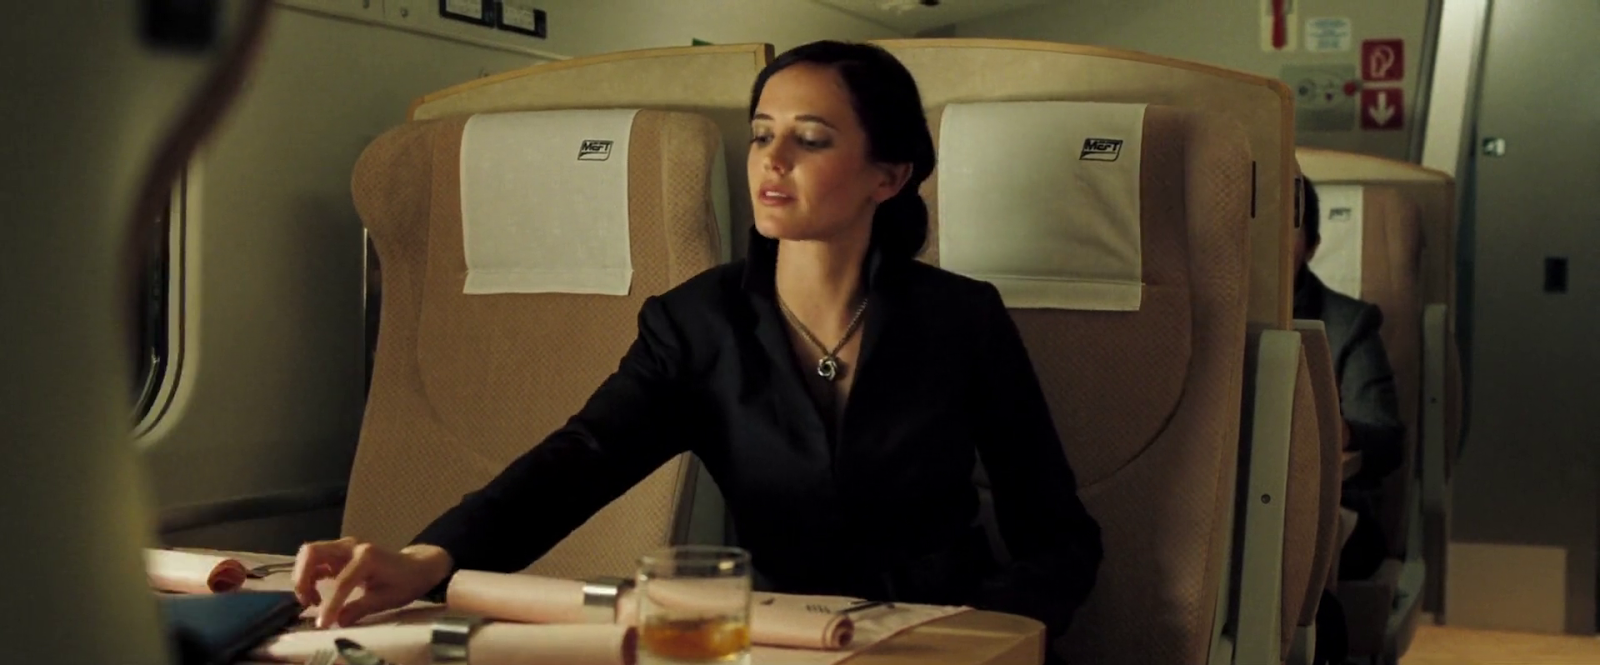 Eva green wardrobe in casino royale casino craig daniel royale